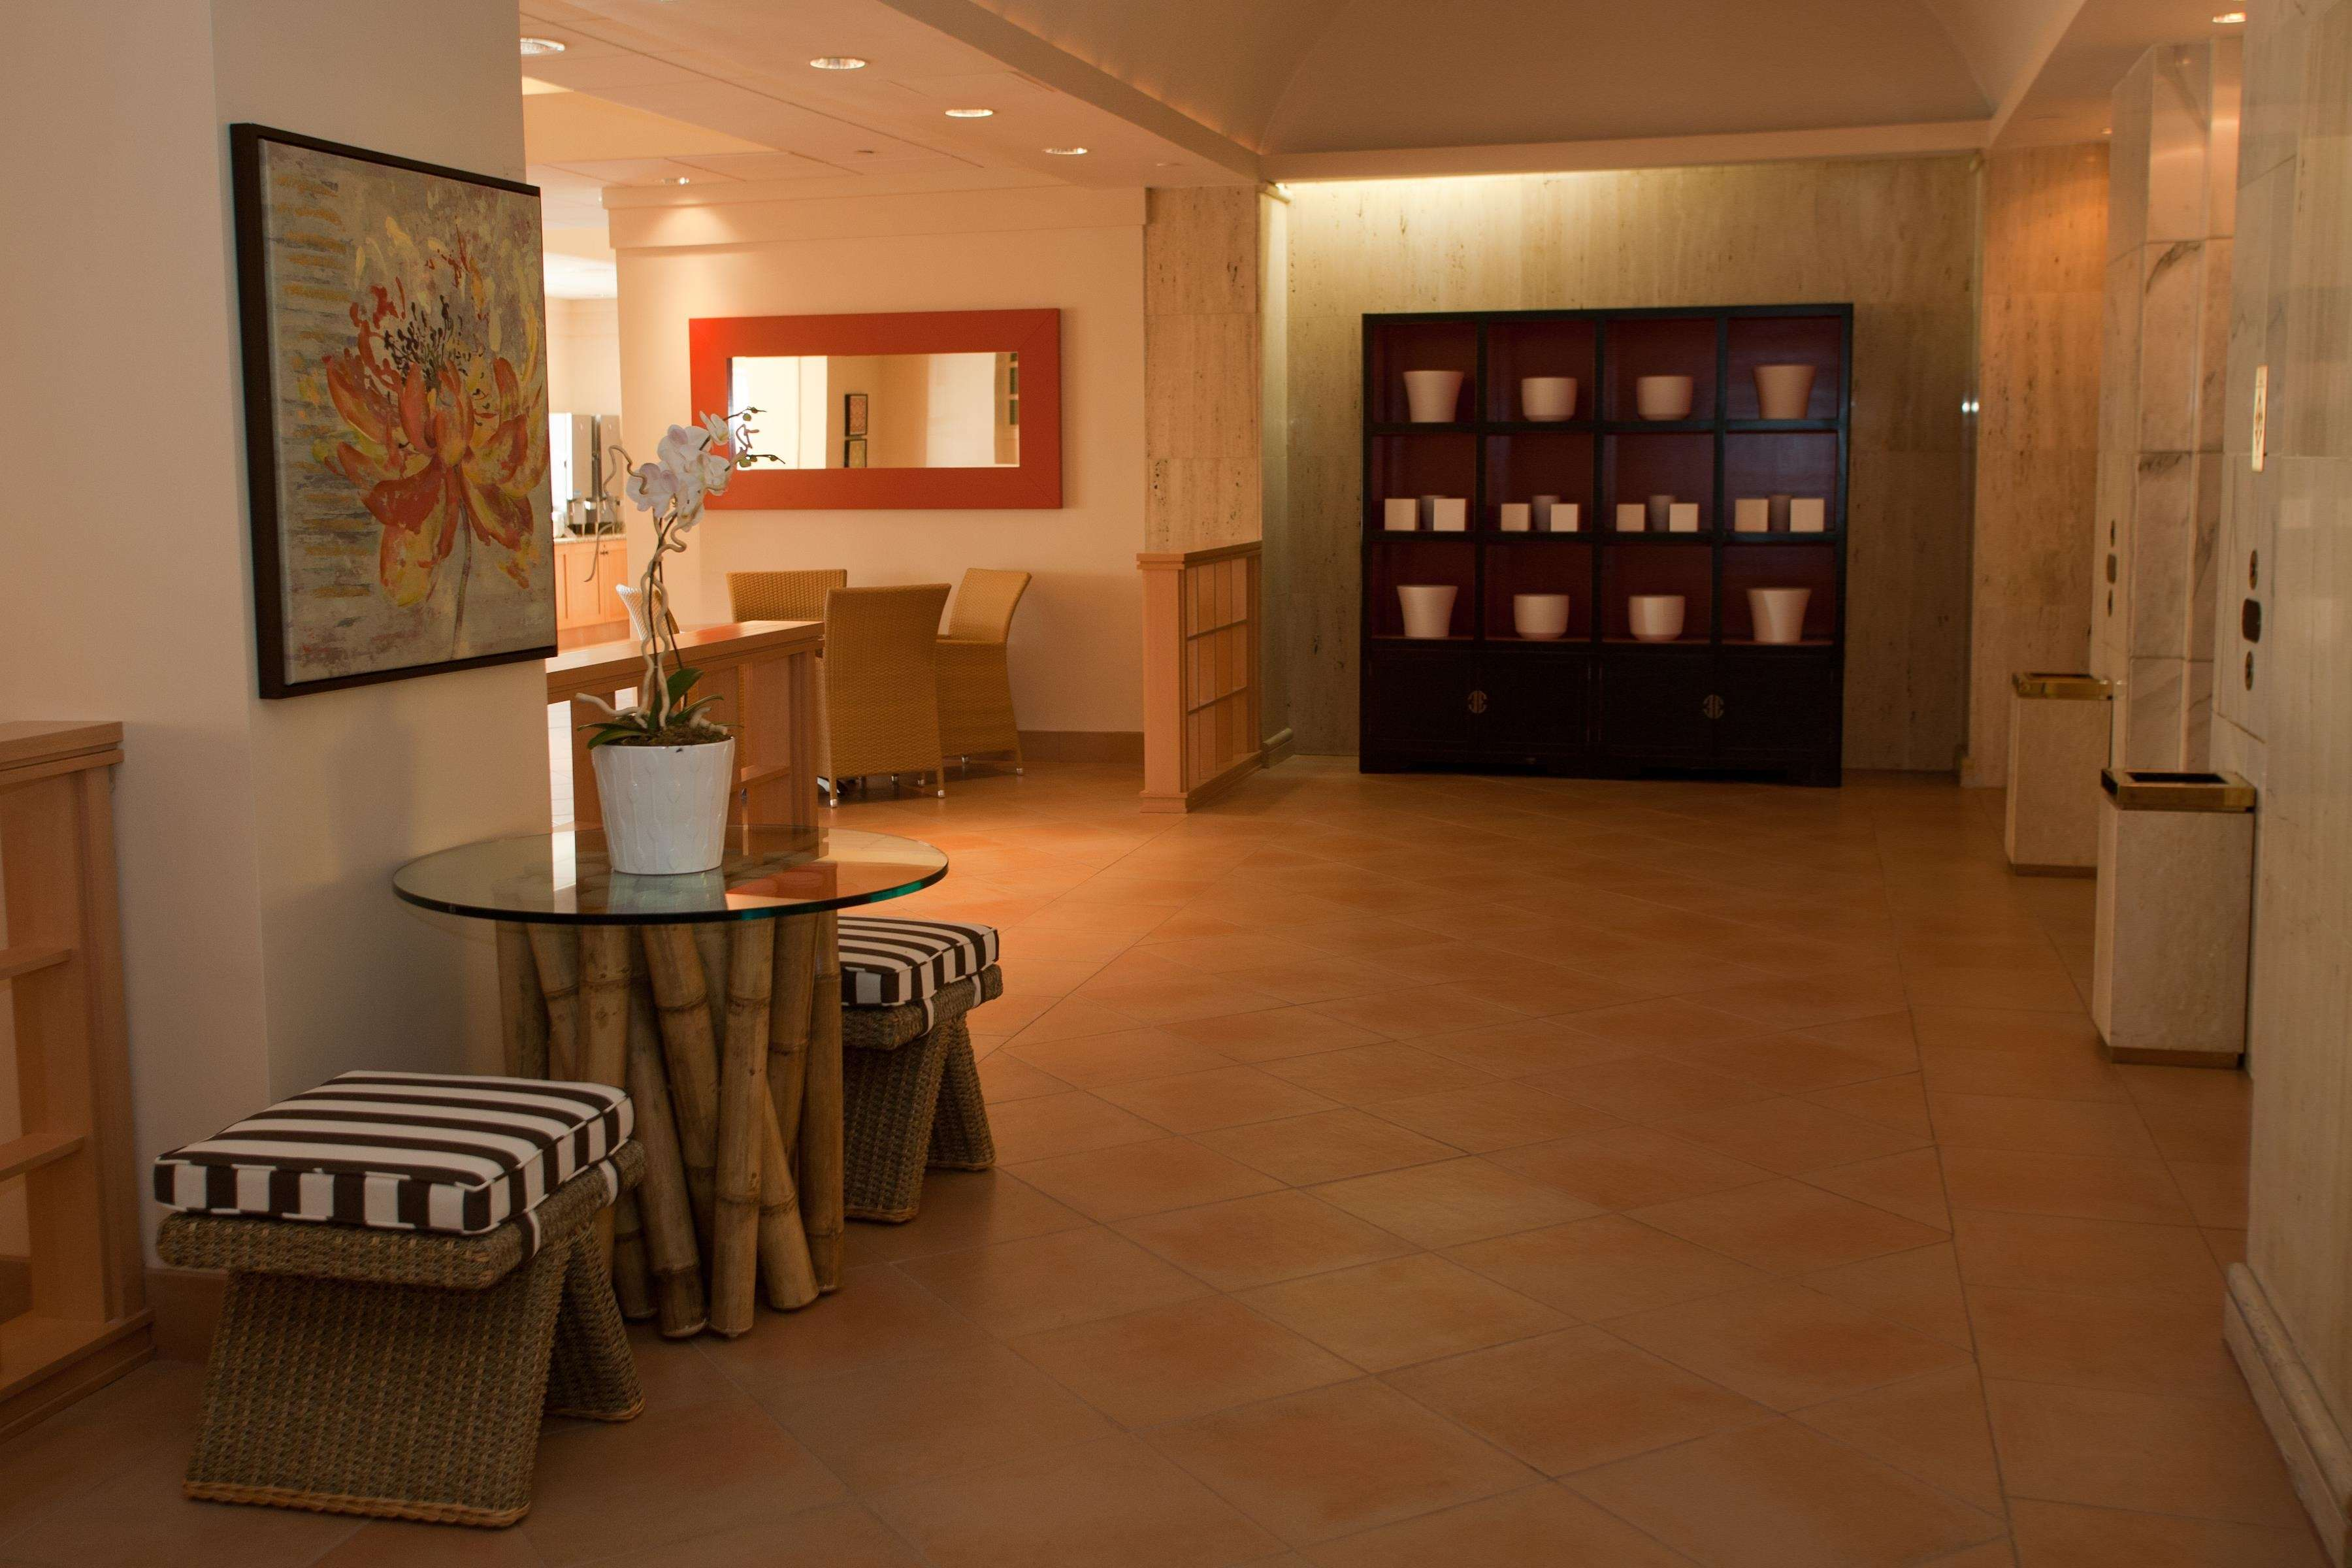 Embassy Suites by Hilton Tampa Airport Westshore image 7